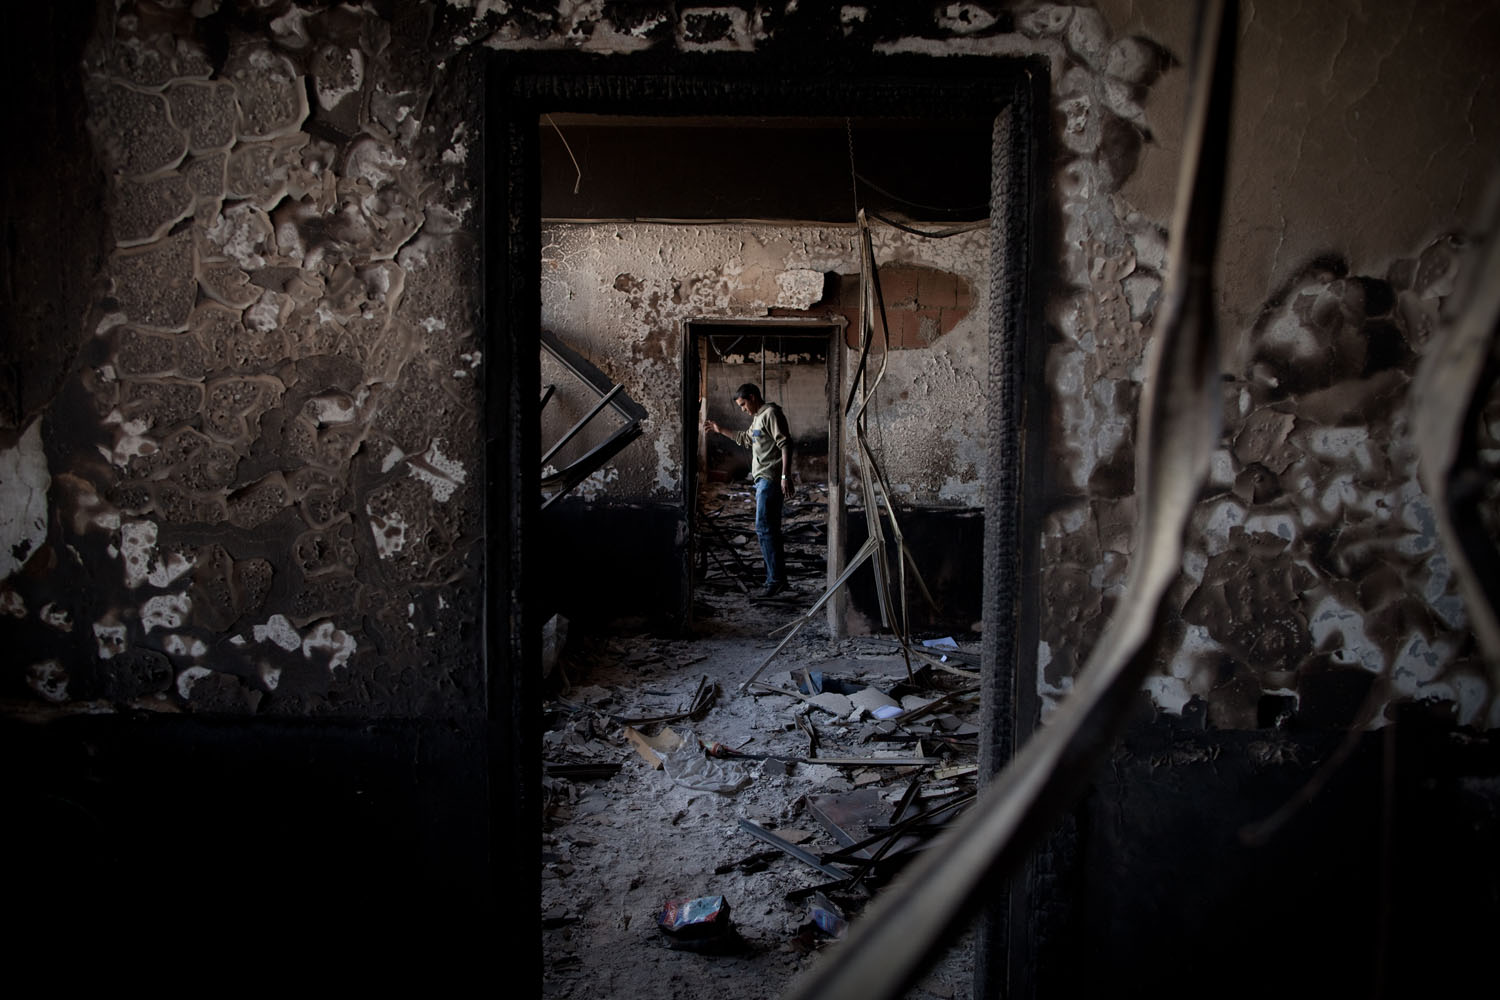 A man walks through a destroyed government complex that was ransacked and burned by the opposition.